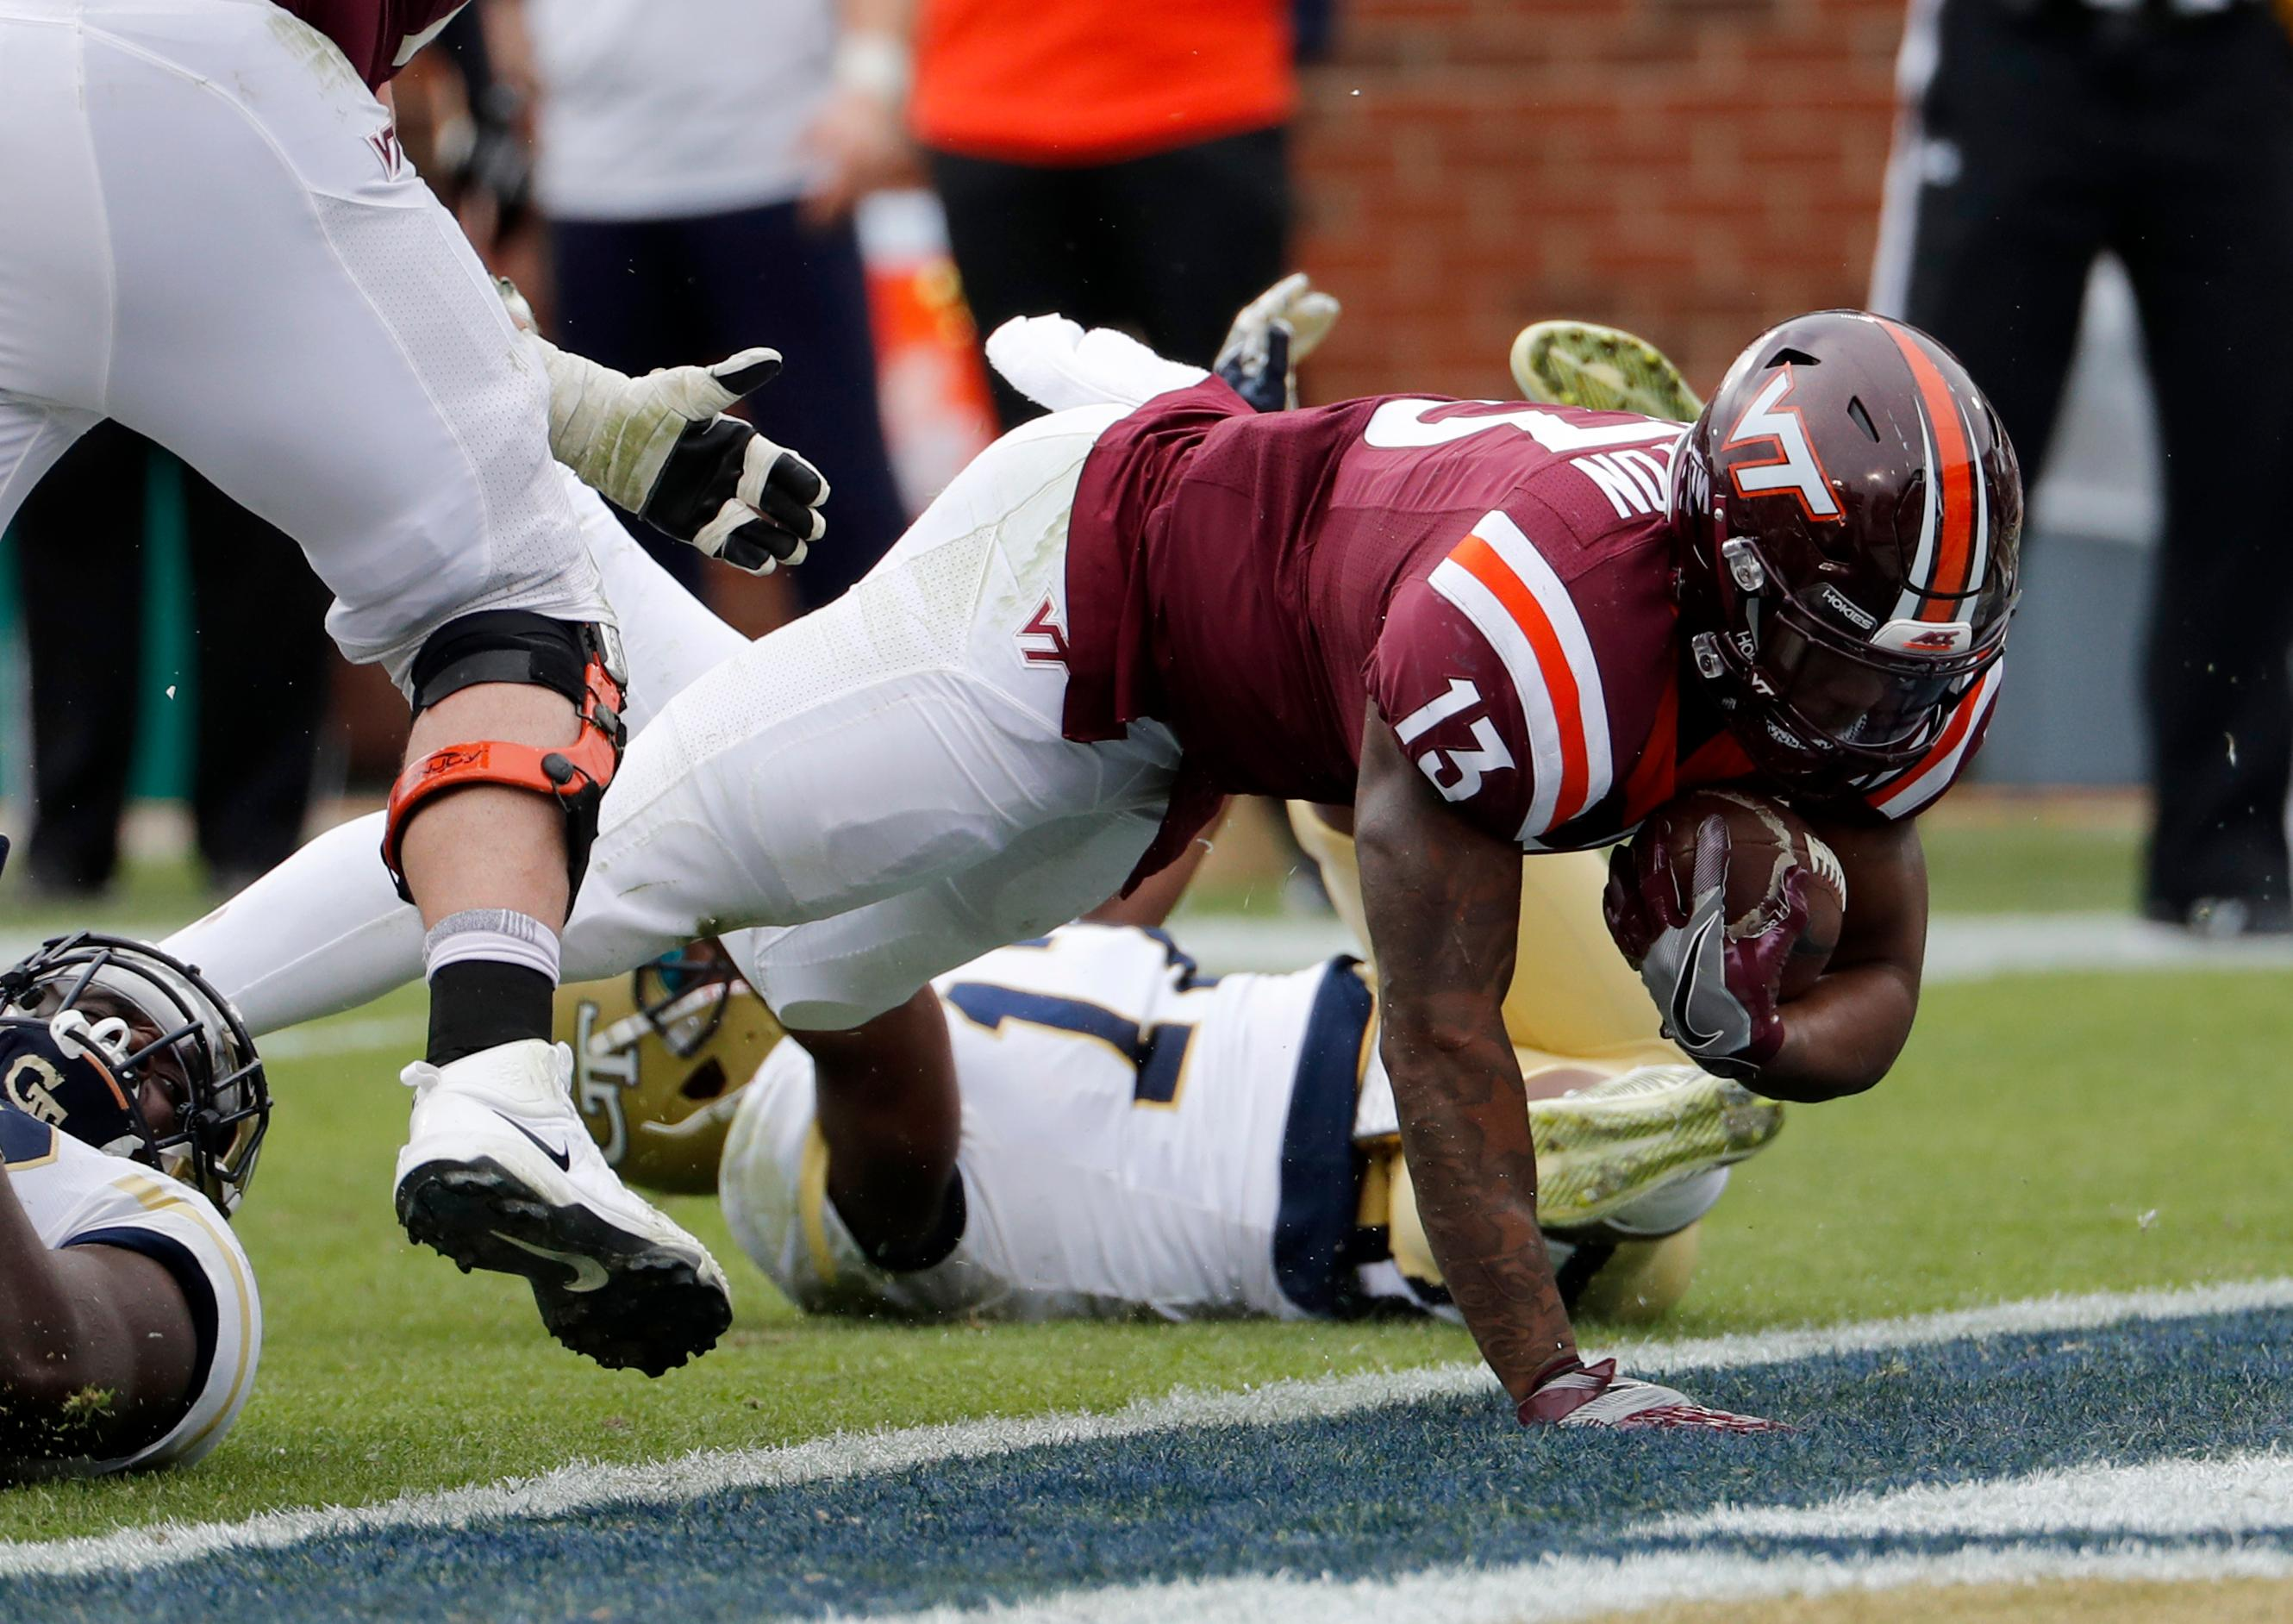 Virginia Tech's Jalen Holston, right, scores a touchdown in the third quarter of an NCAA college football game against Georgia Tech in Atlanta, Saturday, Nov. 11, 2017. Georgia Tech beat Virginia Tech 28-22. (AP Photo/David Goldman)